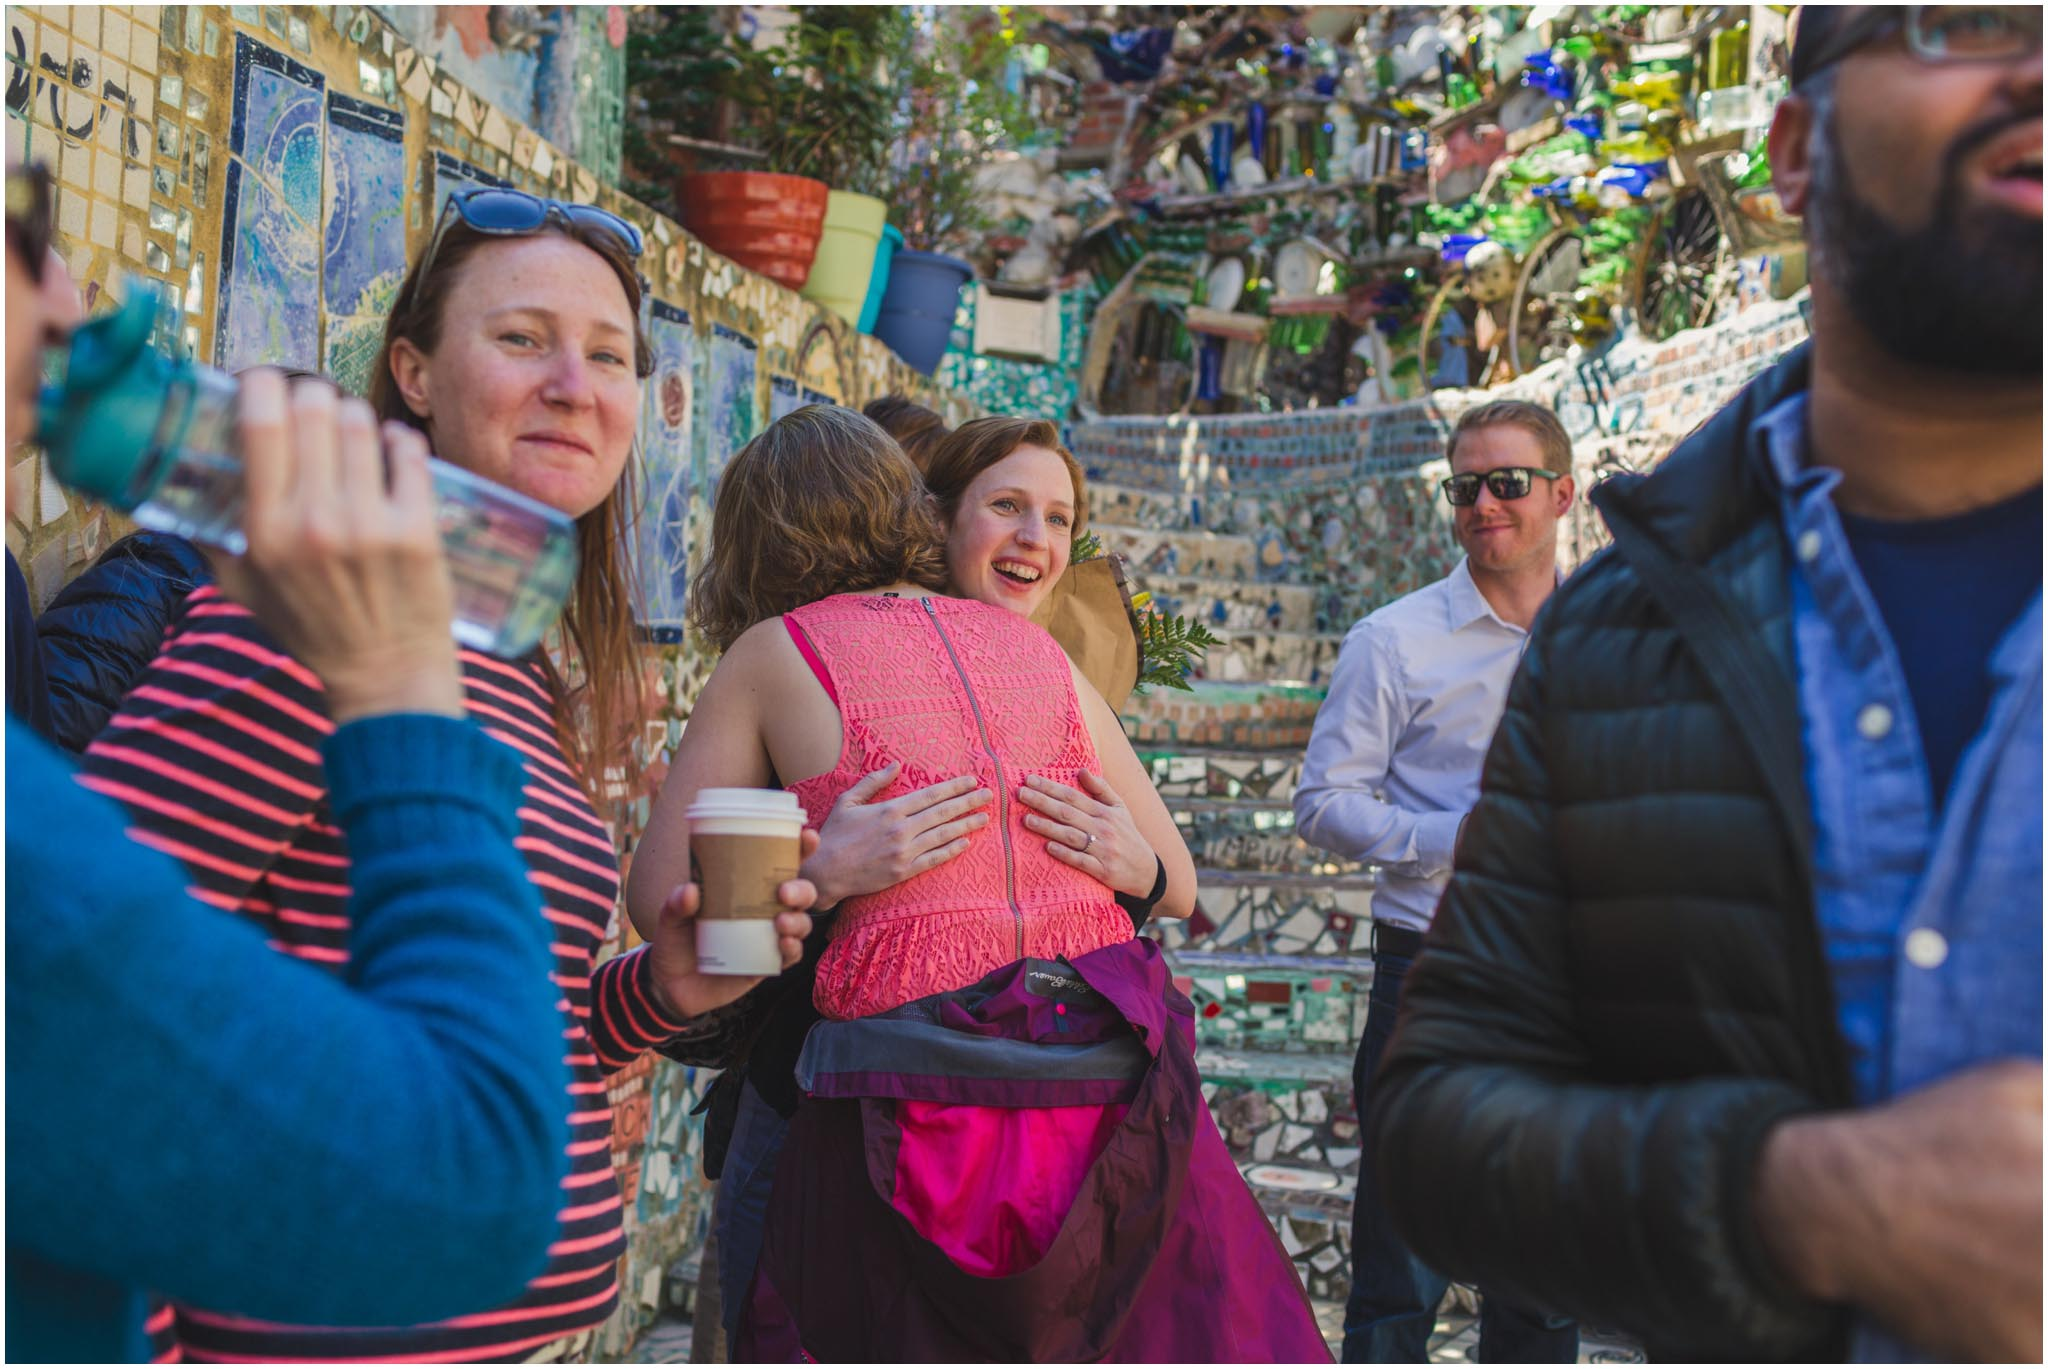 Philadelphia's Magic Gardens, proposal, engagement